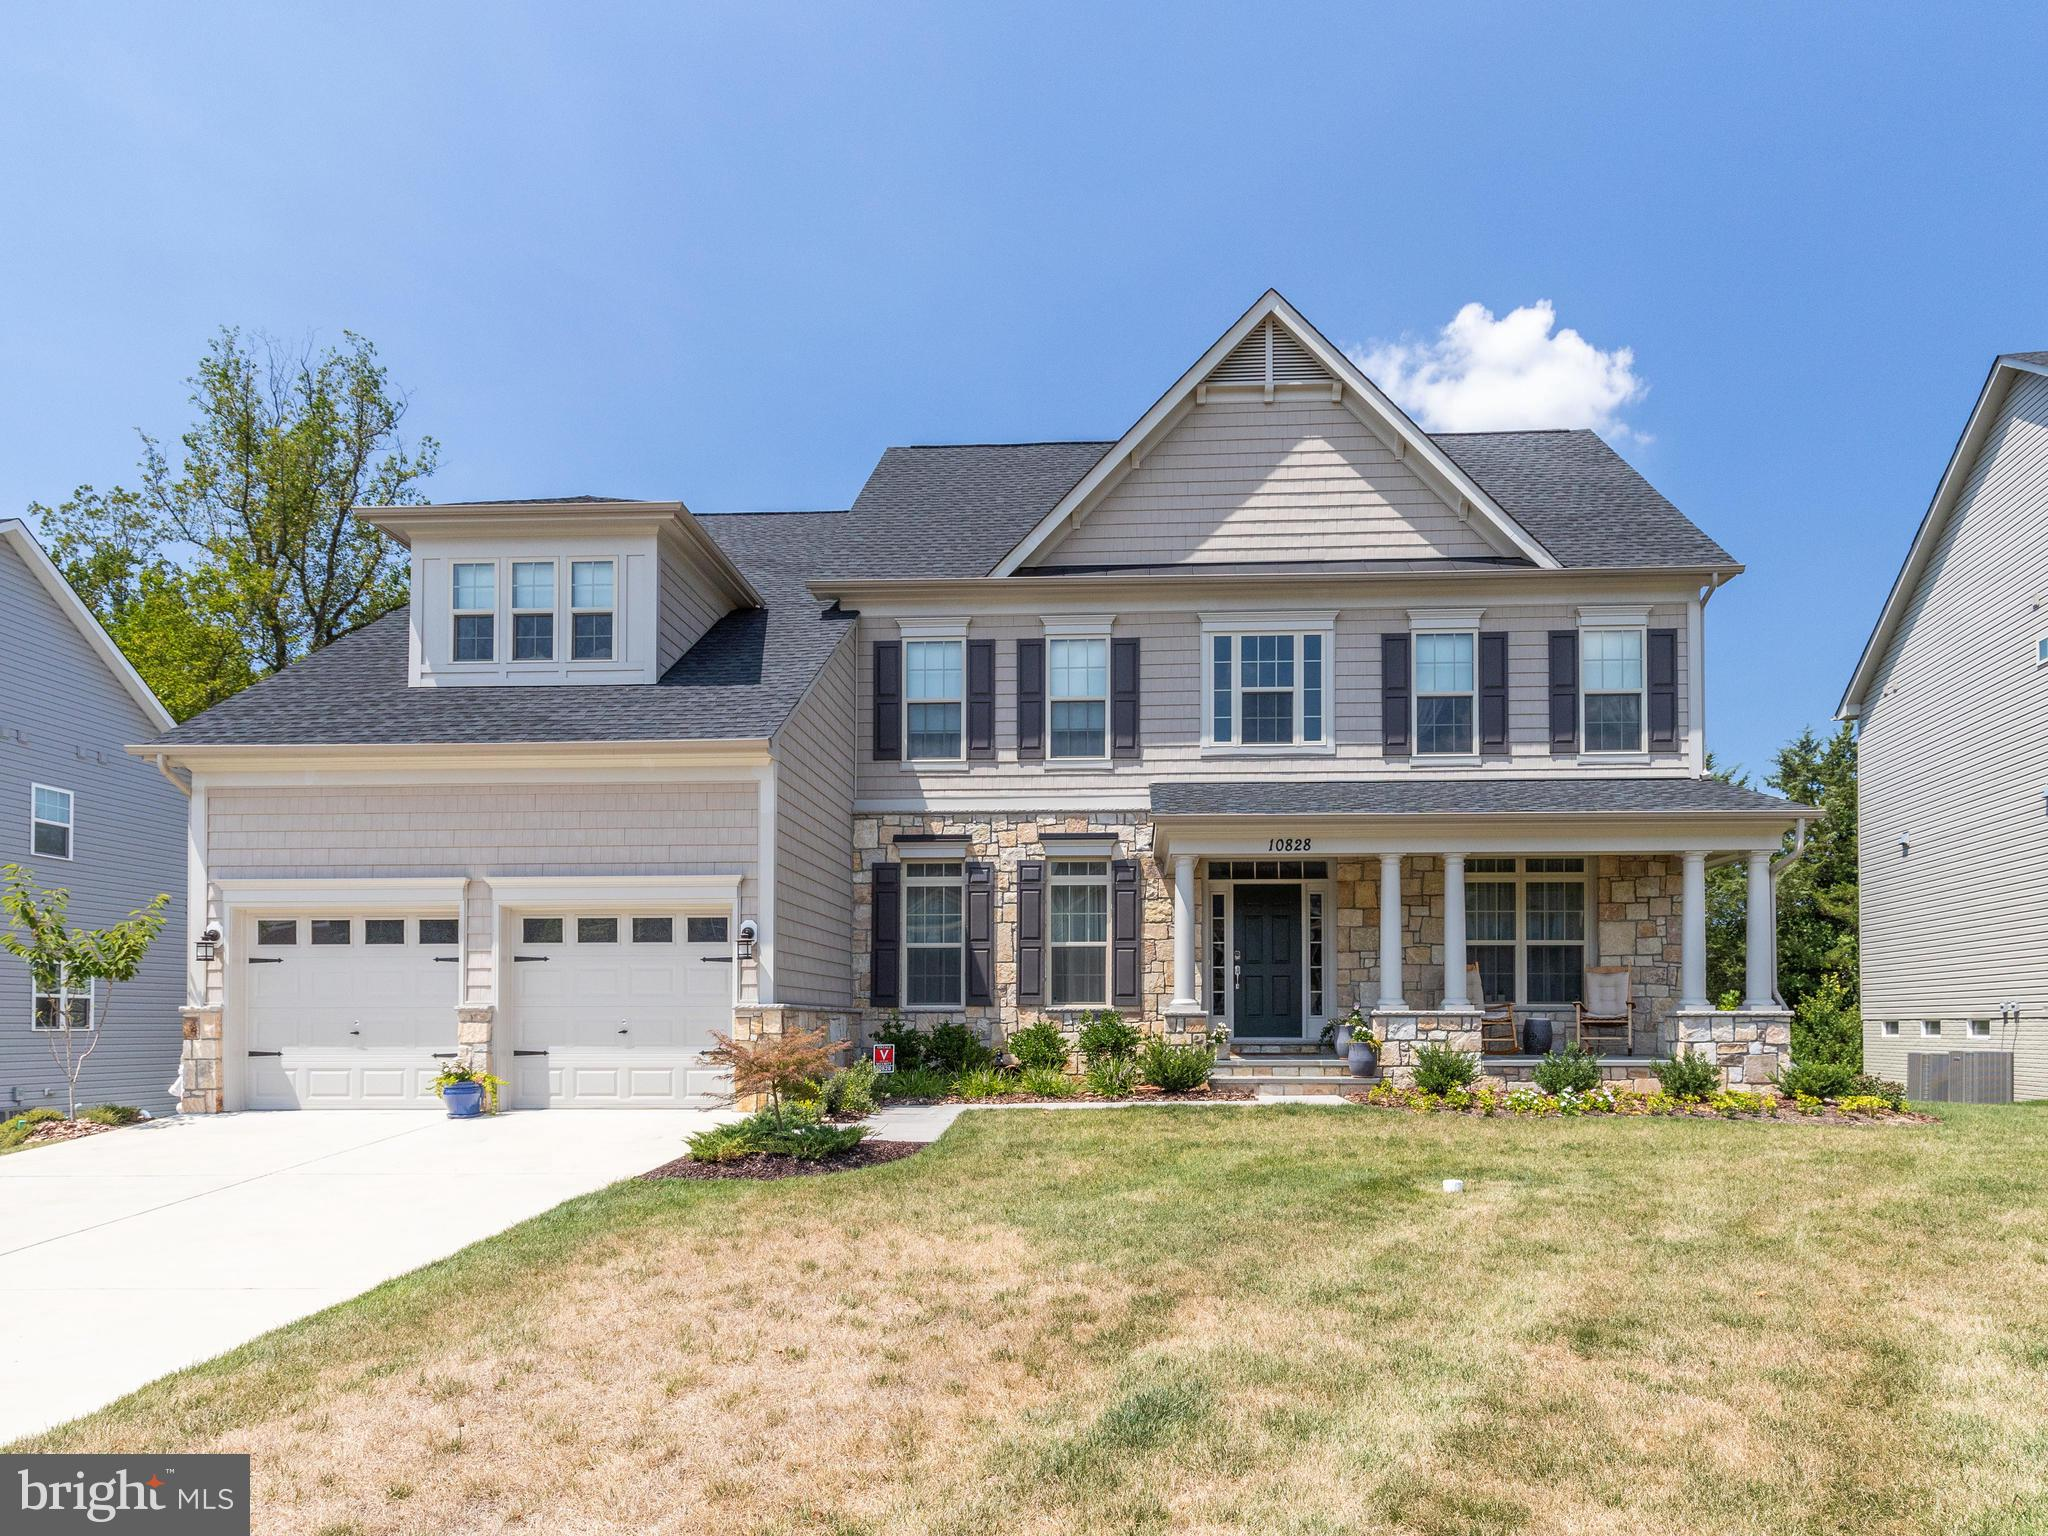 10828 ROCKLAND DRIVE, LAUREL, MD 20723